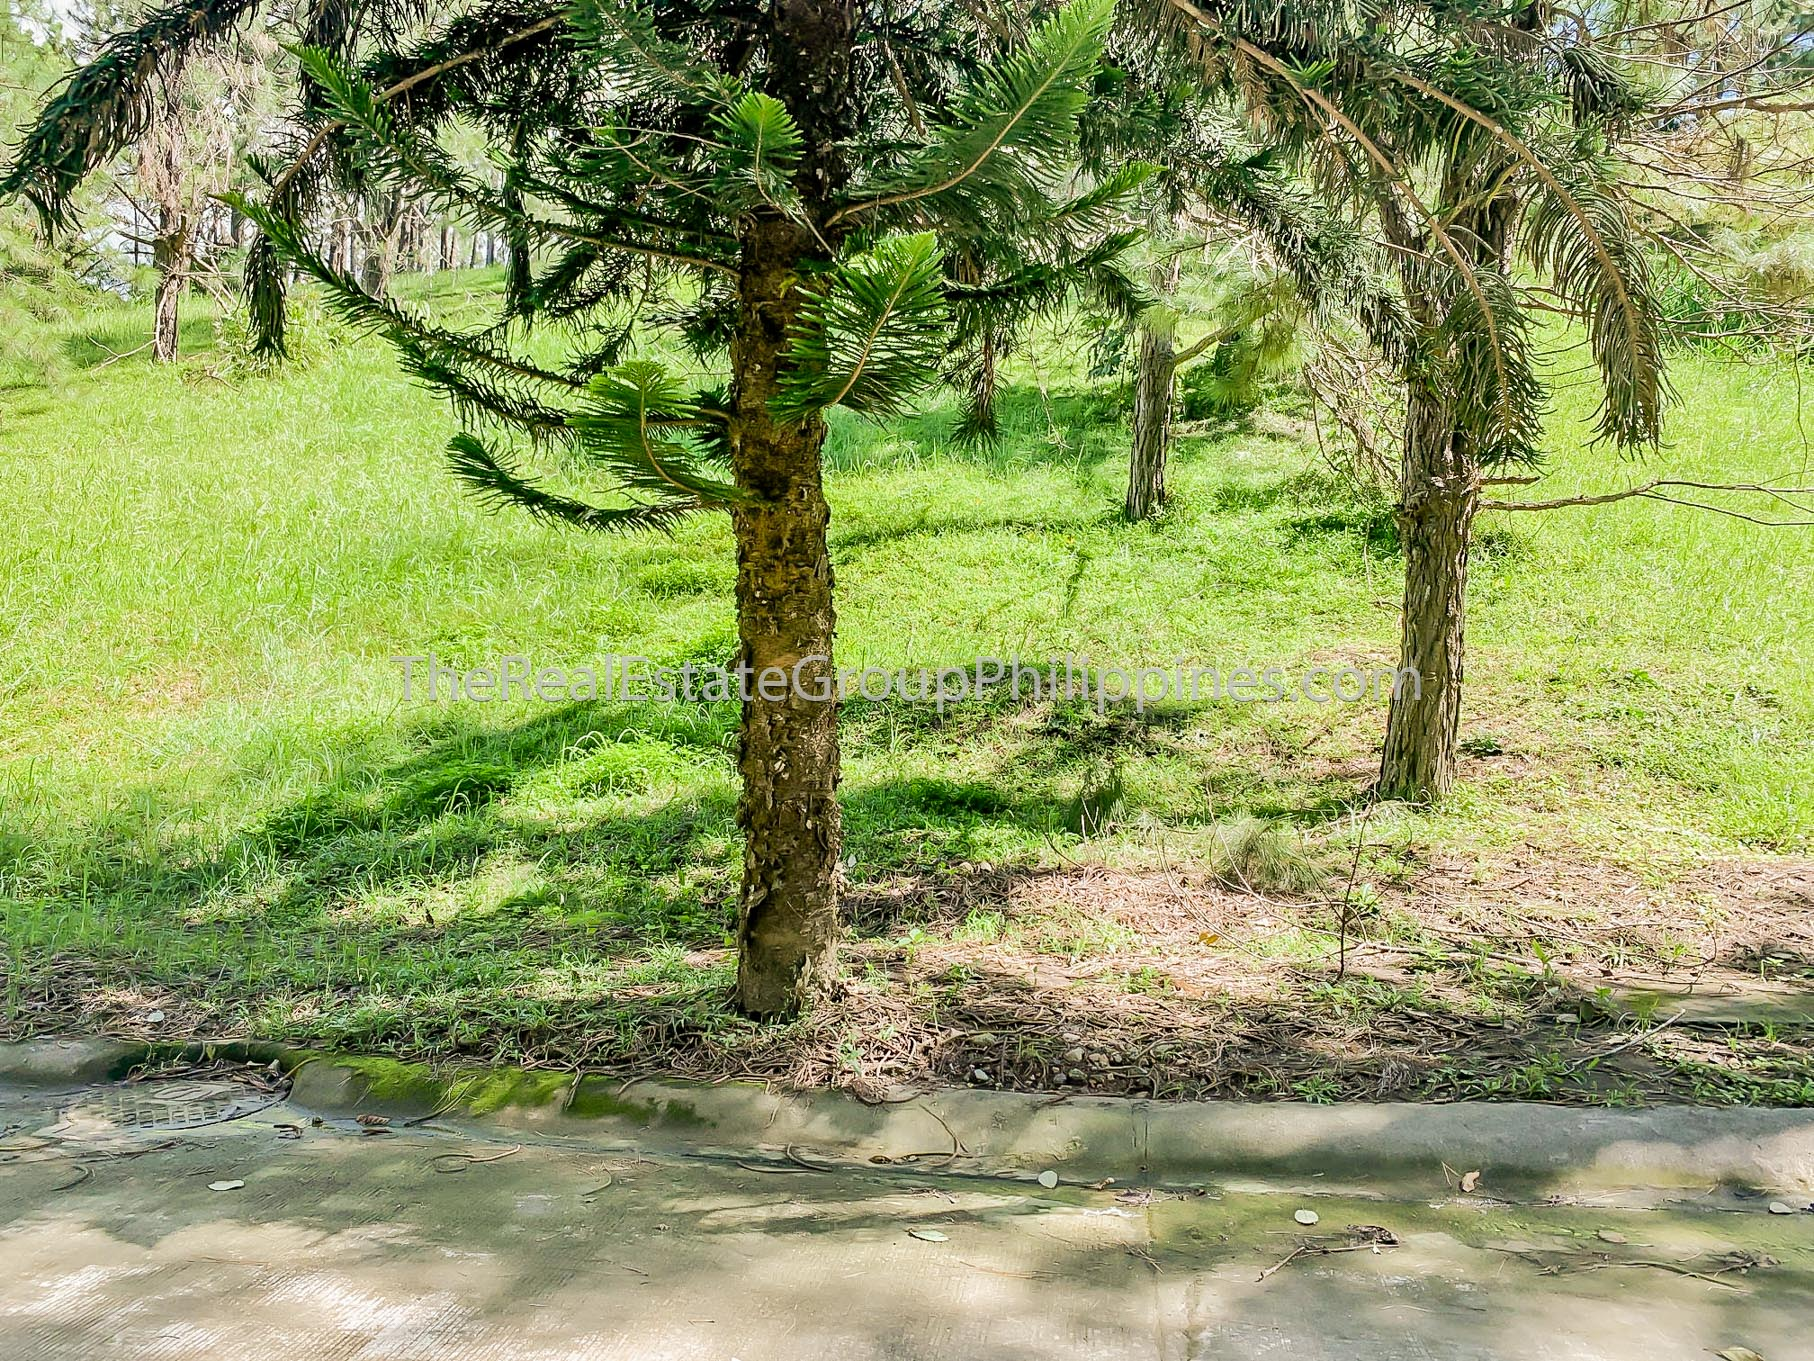 Residential Lot For Sale, Crosswinds Resort Suites, Tagaytay City (7 of 8)